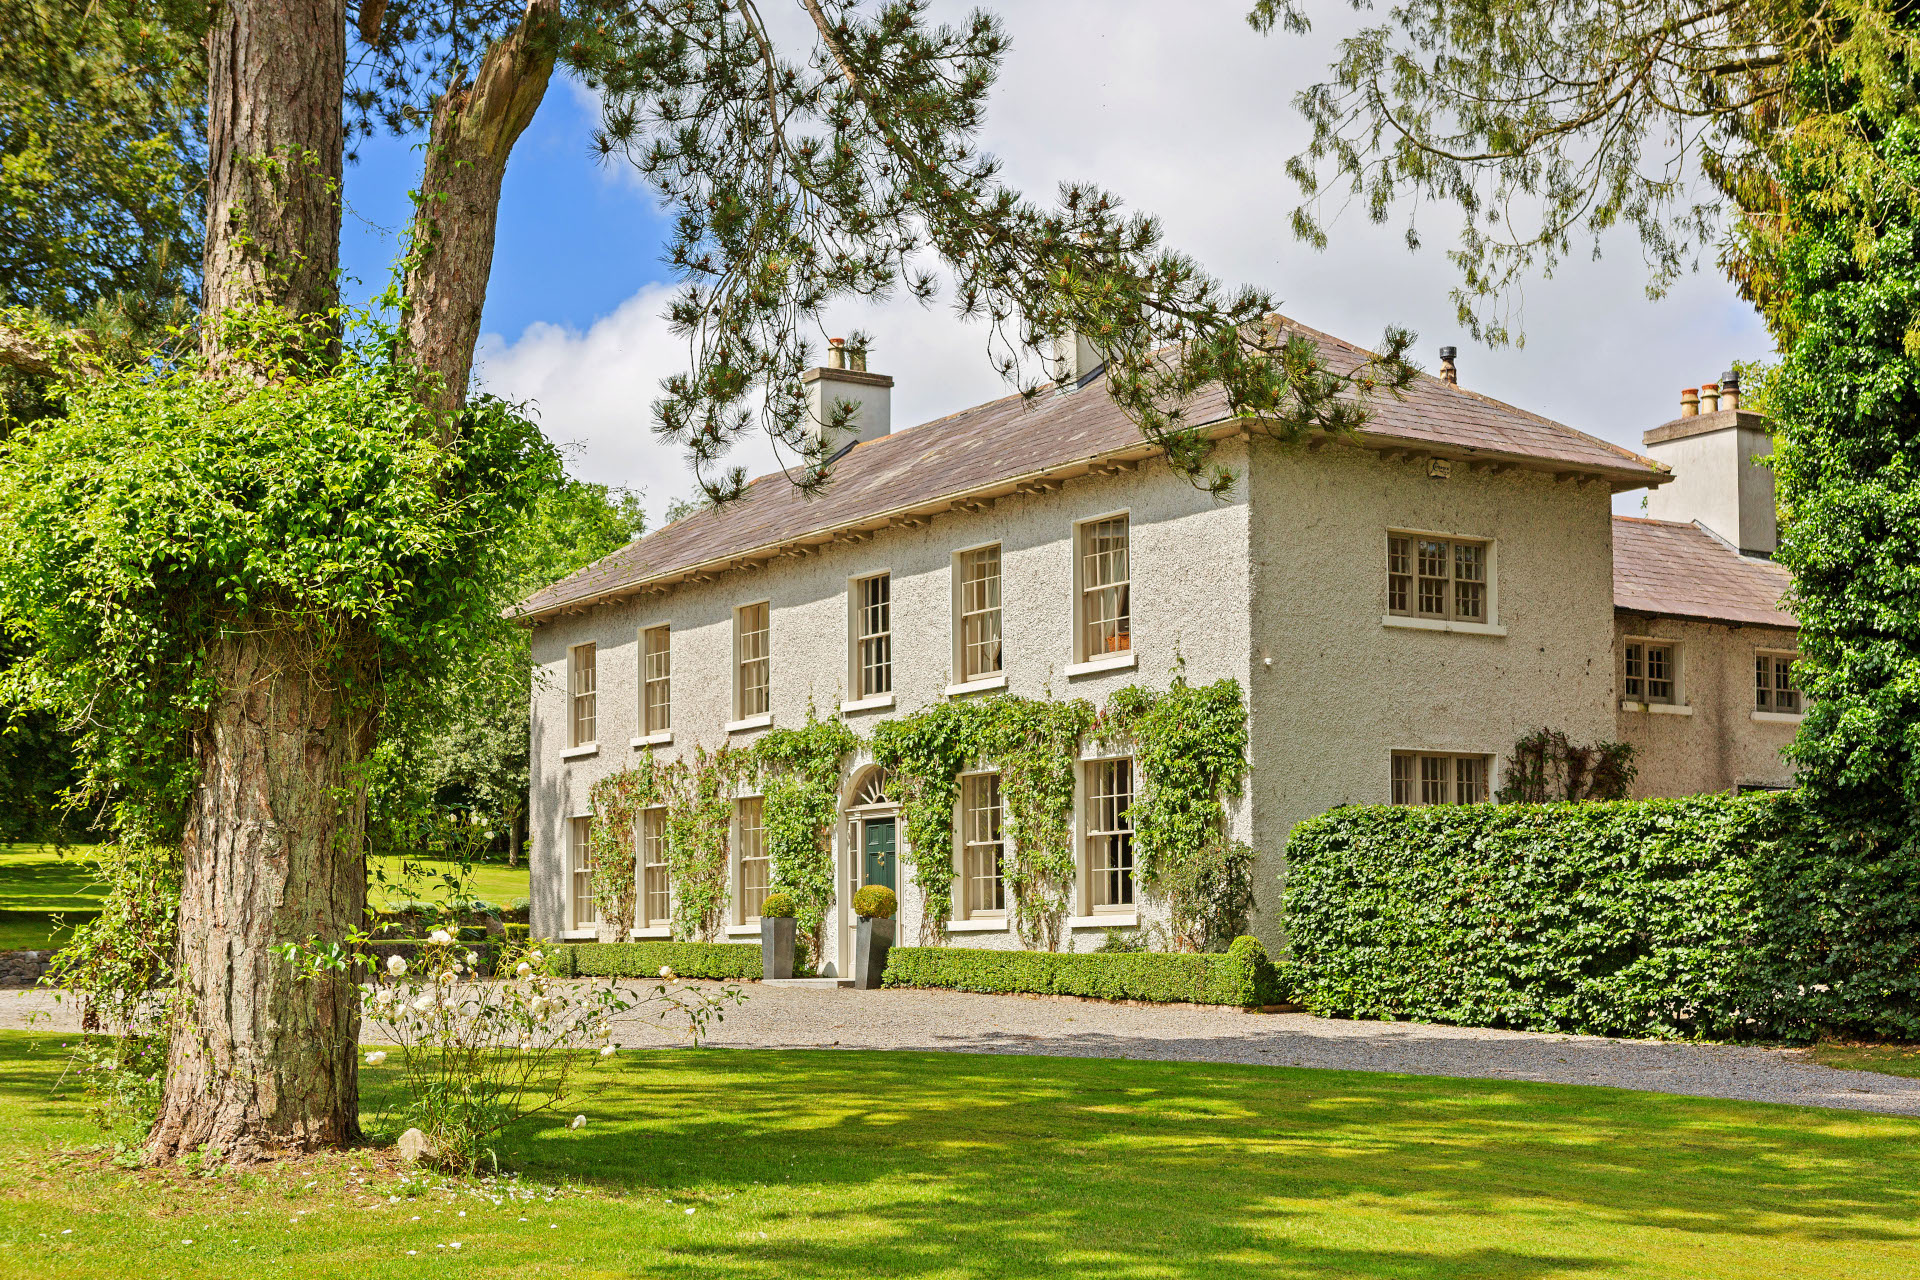 A 19th-century courthouse-turned-rectory, Oldcourt House in County Kildare is today a luxury family home on 13.5 acres with ample space for sporting and equine pursuits.